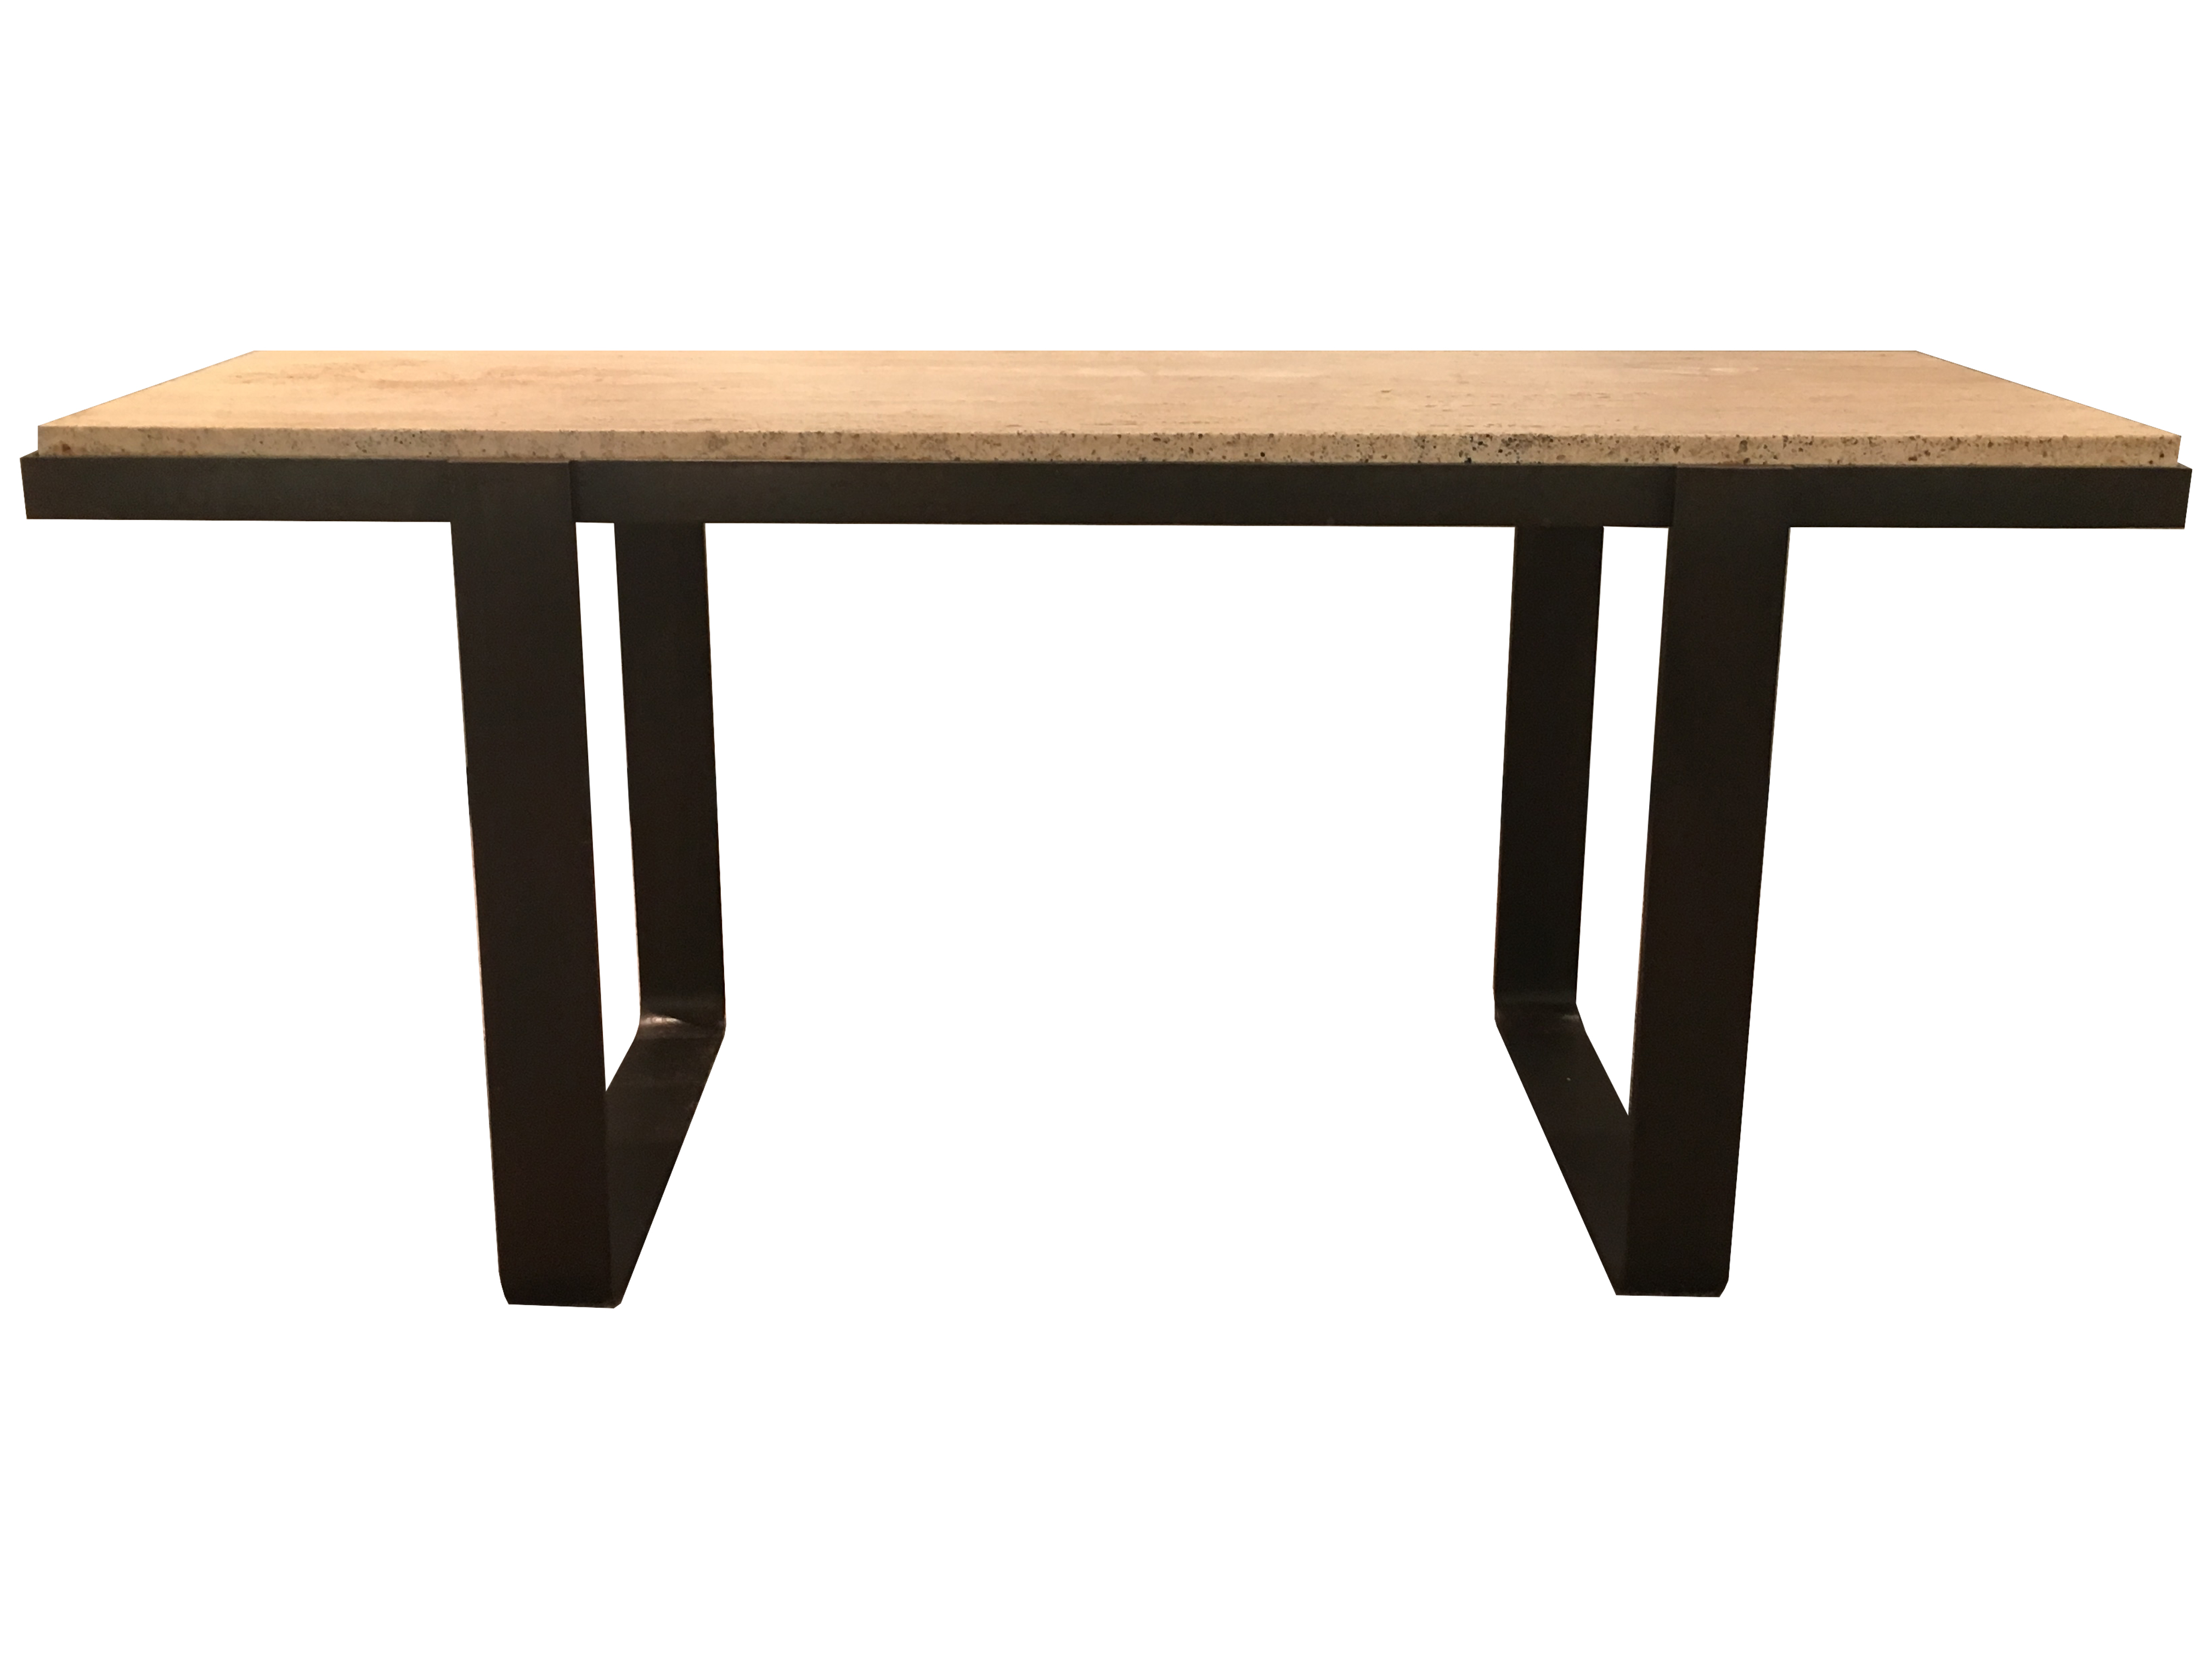 t brown Image 4_Iron Marble Console